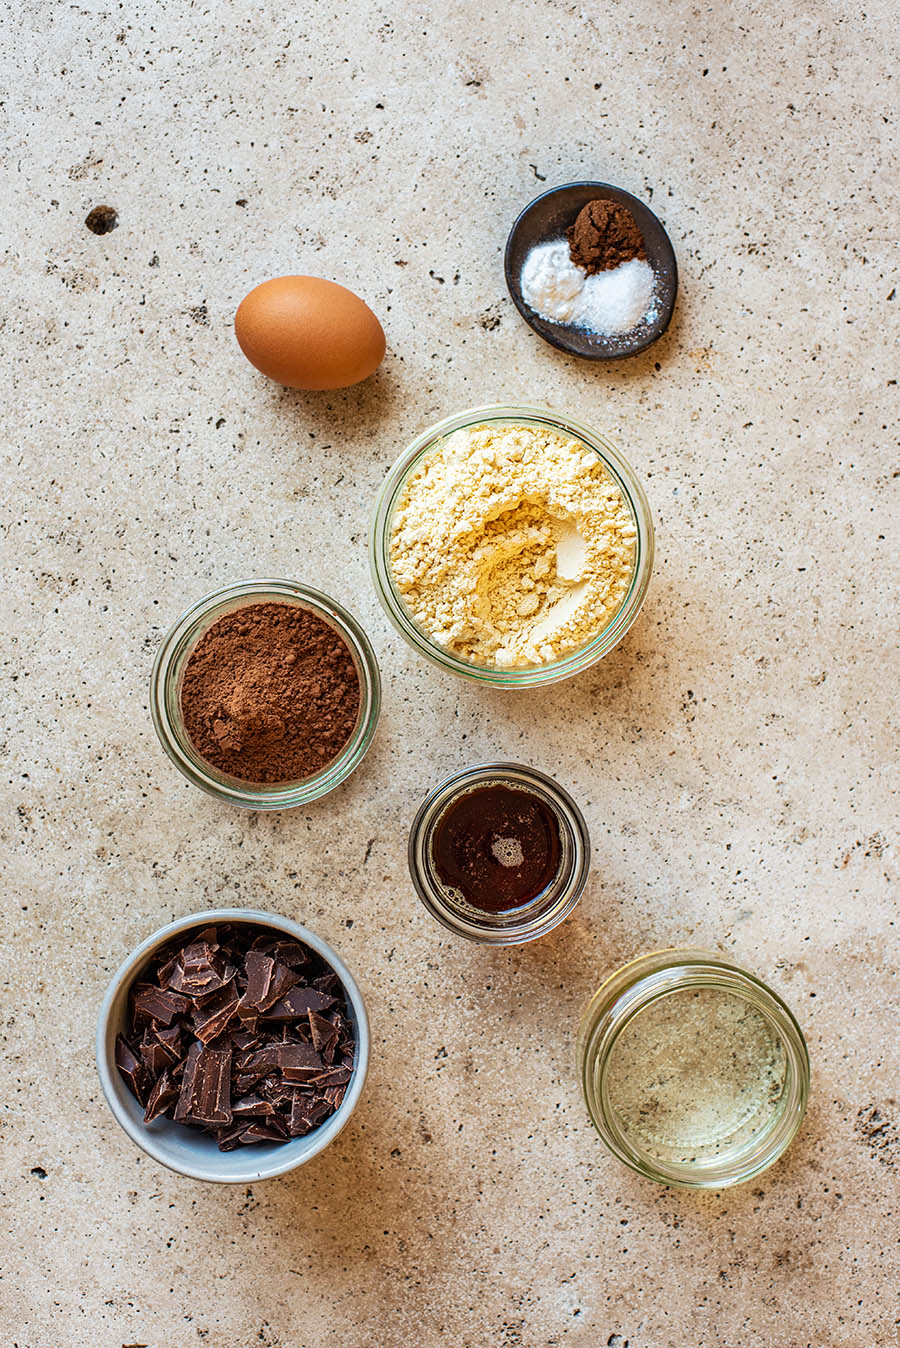 Chocolate chickpea flour cookie ingredients.